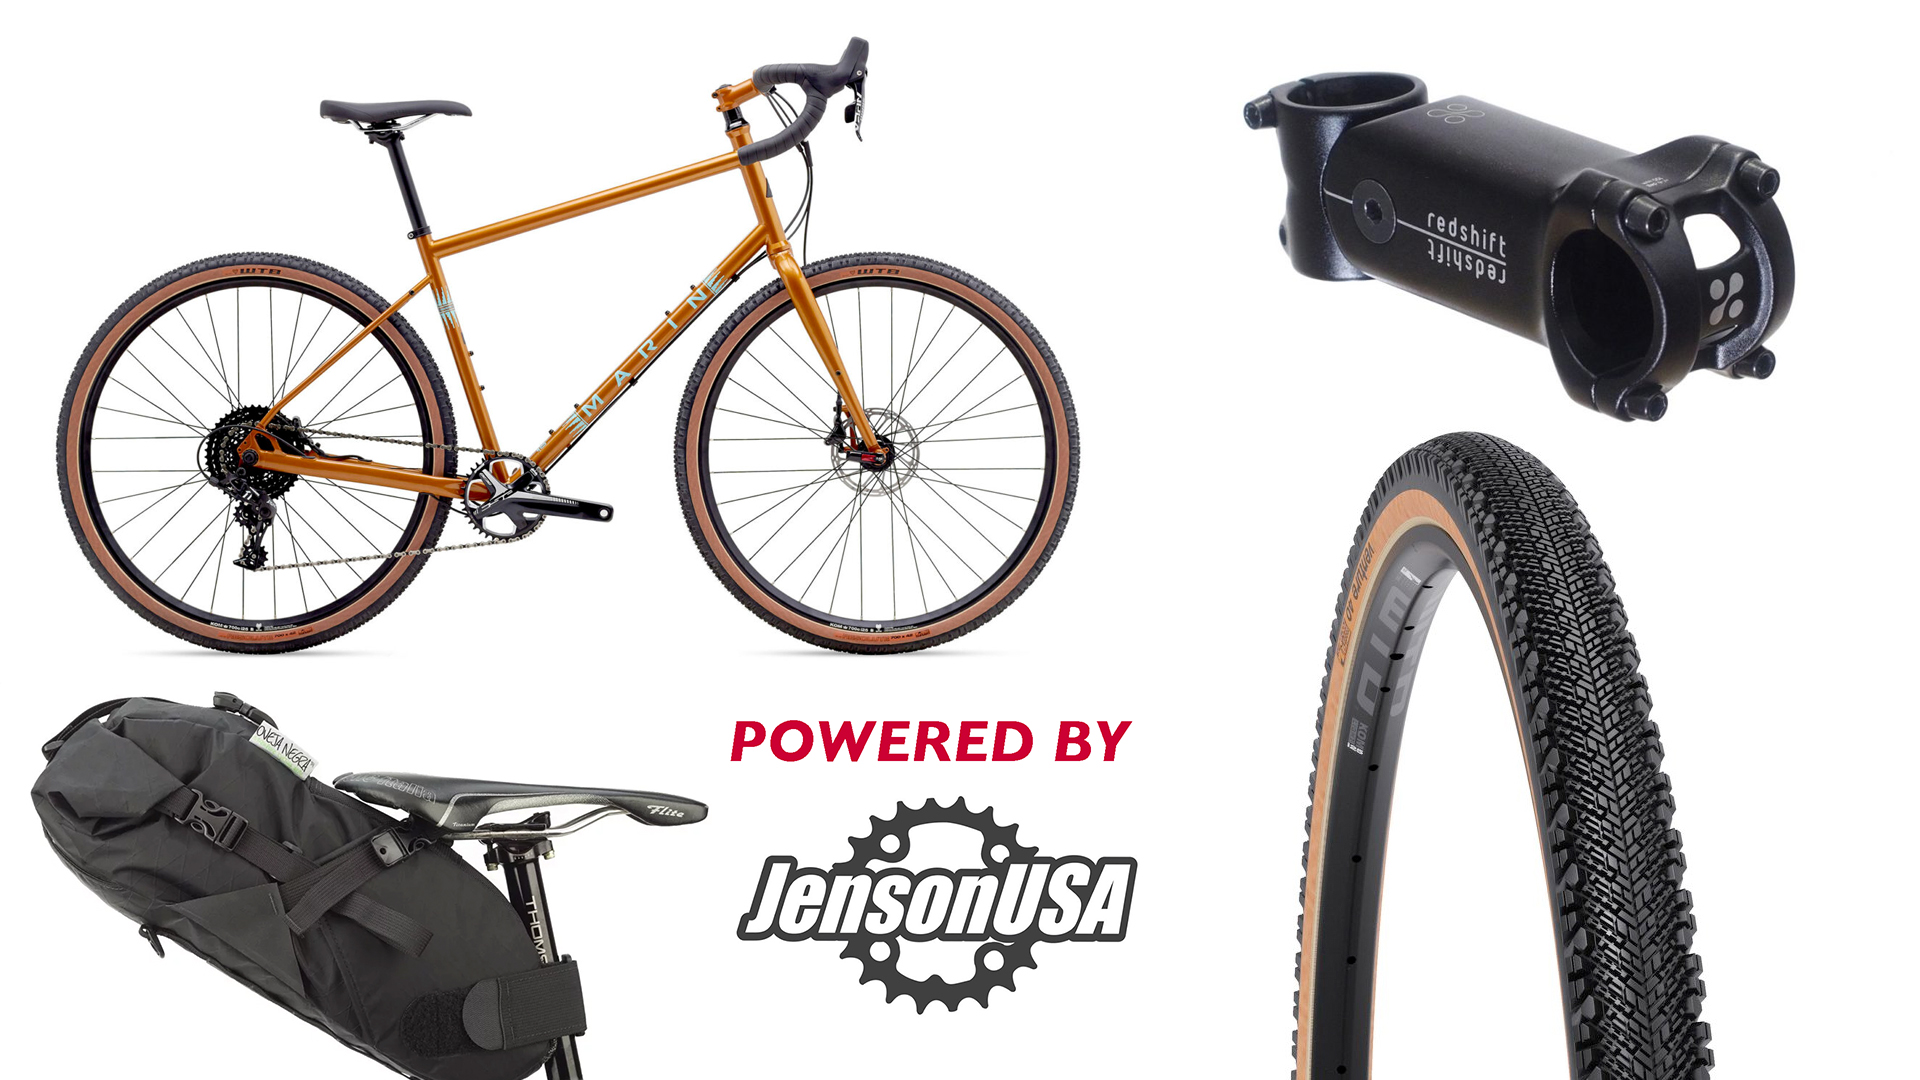 These great gifts for bikepackers and gravel grinders are sure to please your adventuresome friends or significant other.